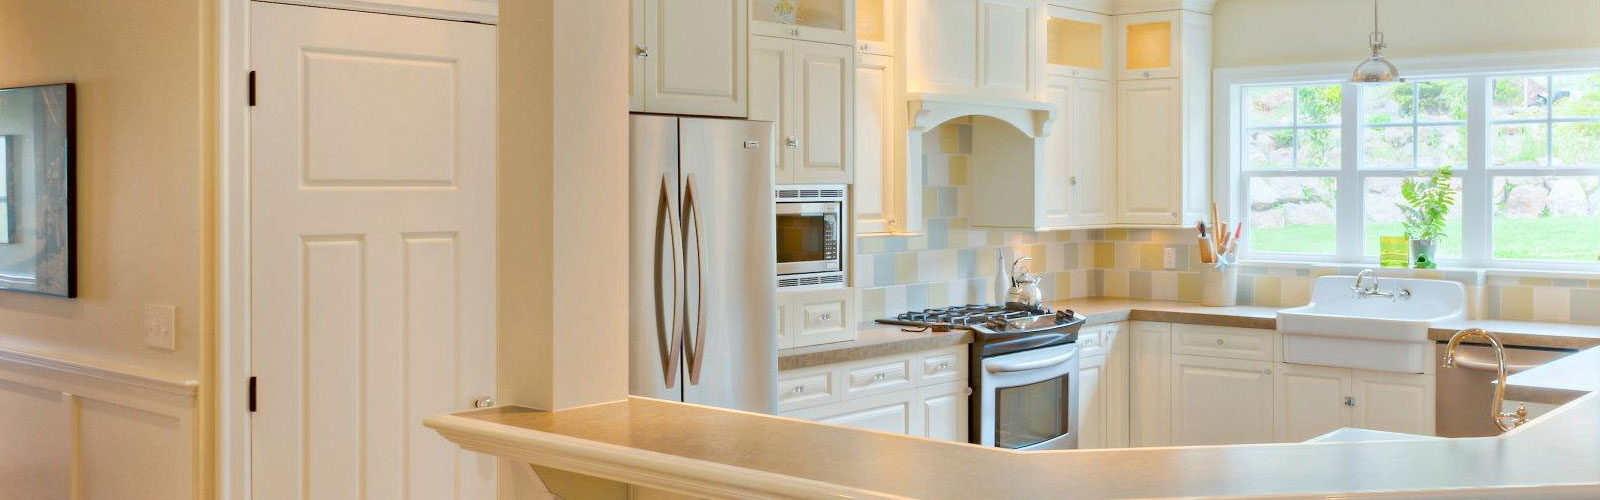 Uncategorized. Kitchen Cabinets Kamloops. jamesmcavoybr Home Design